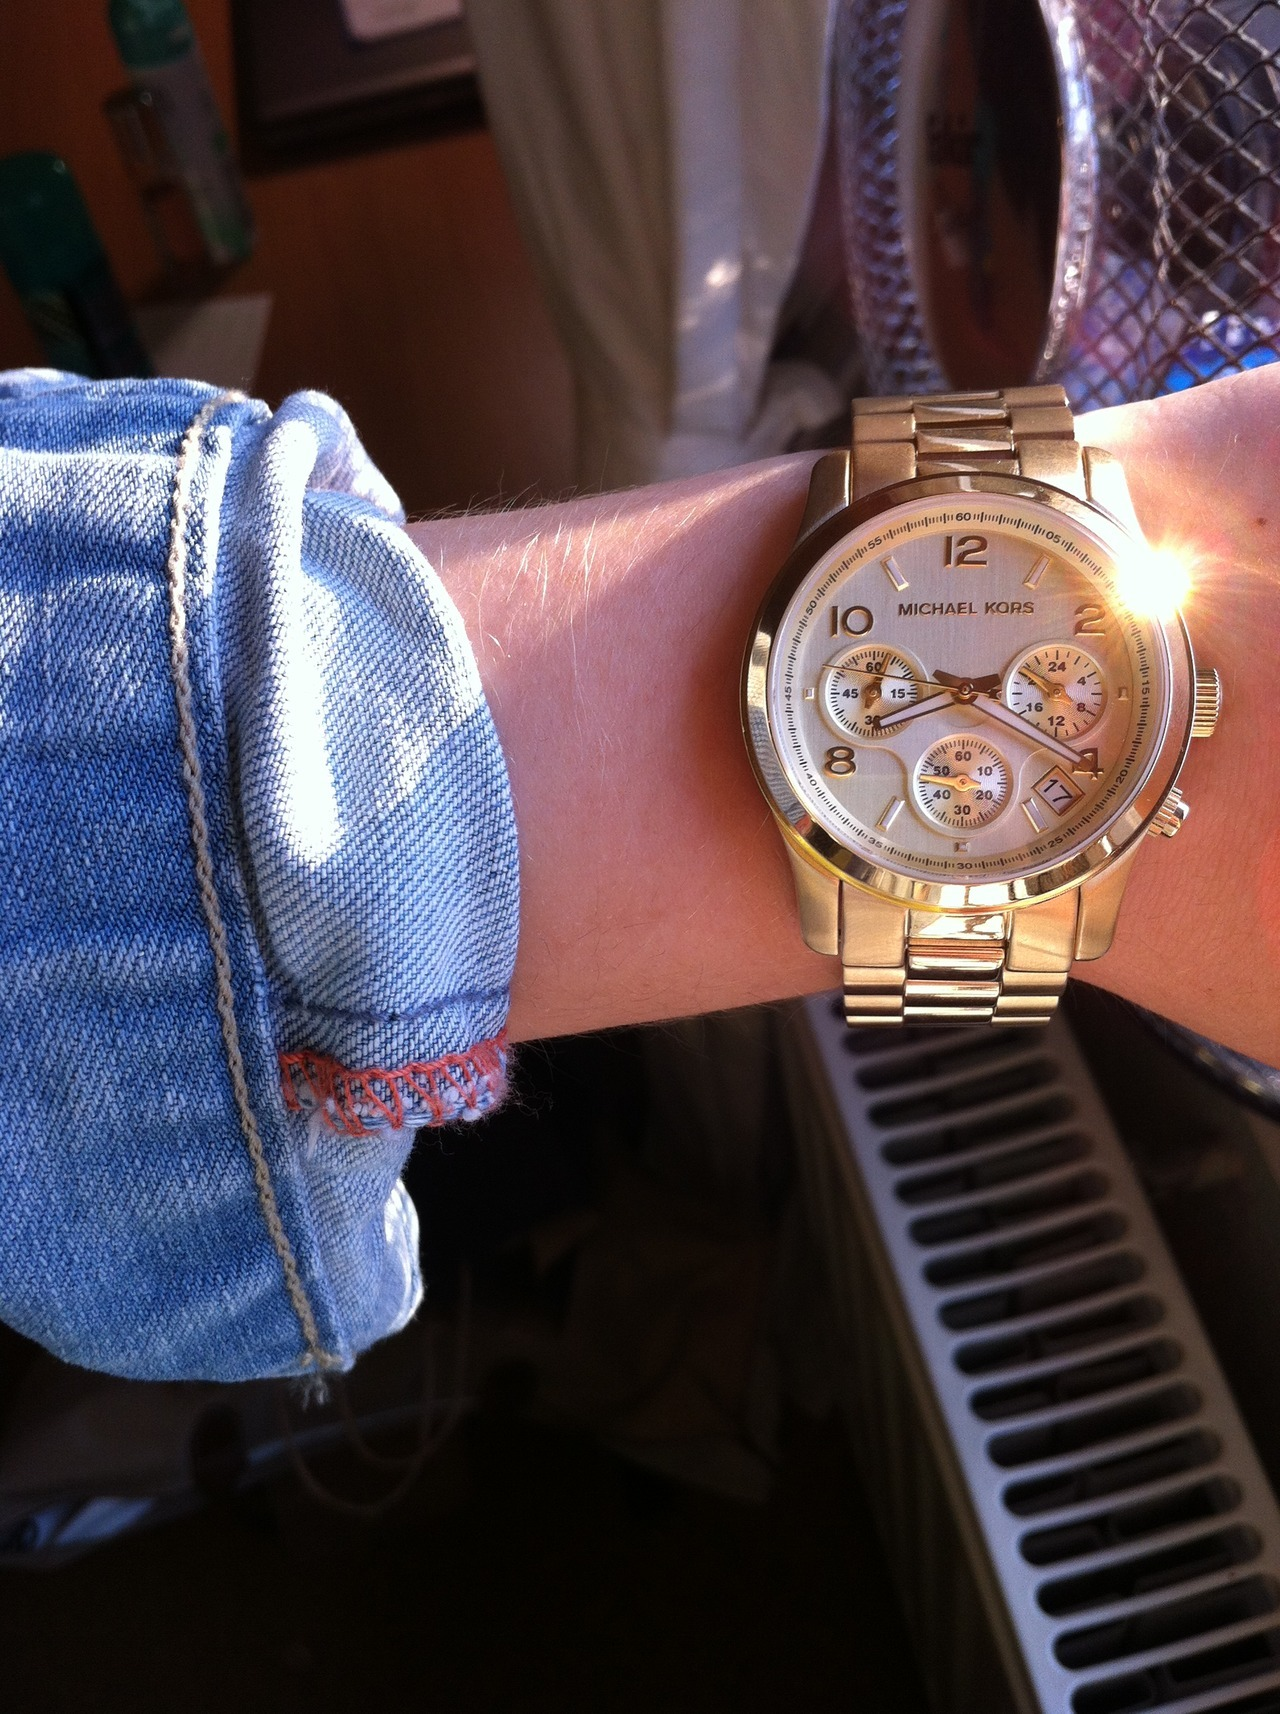 greta-74: uh yeeah lovin my michael kors  greta-74: WOW!!!! 100.00 notes! never thought that my picture would ever get that many yeeah